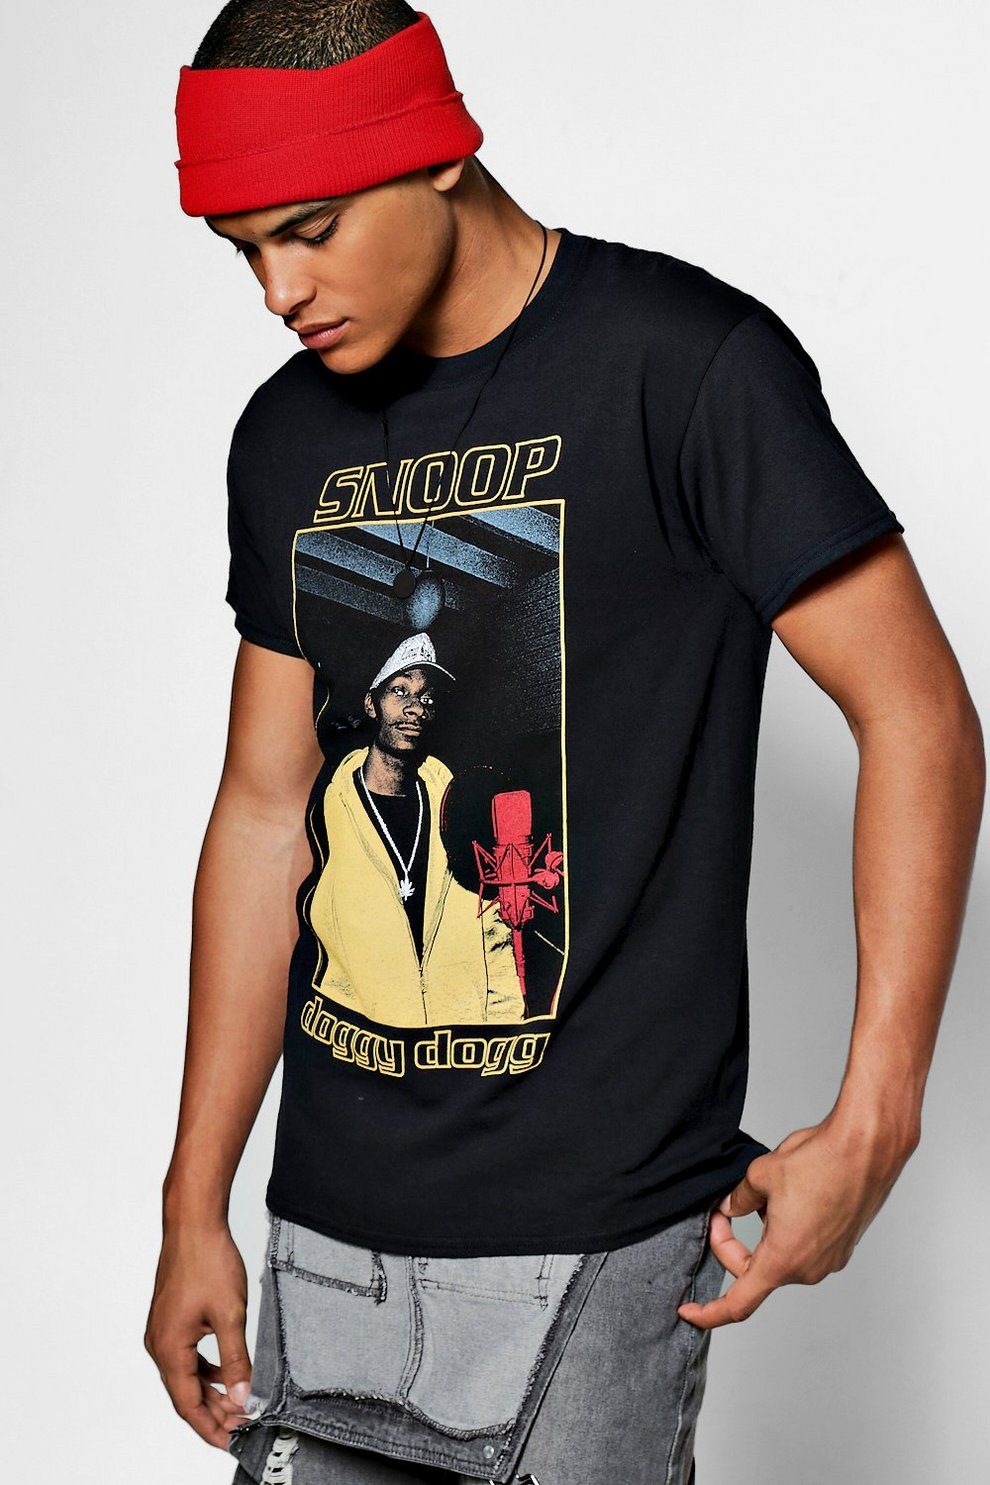 e89658c4 Mens Black Snoop Doggy Dogg Licence T-Shirt. Hover to zoom